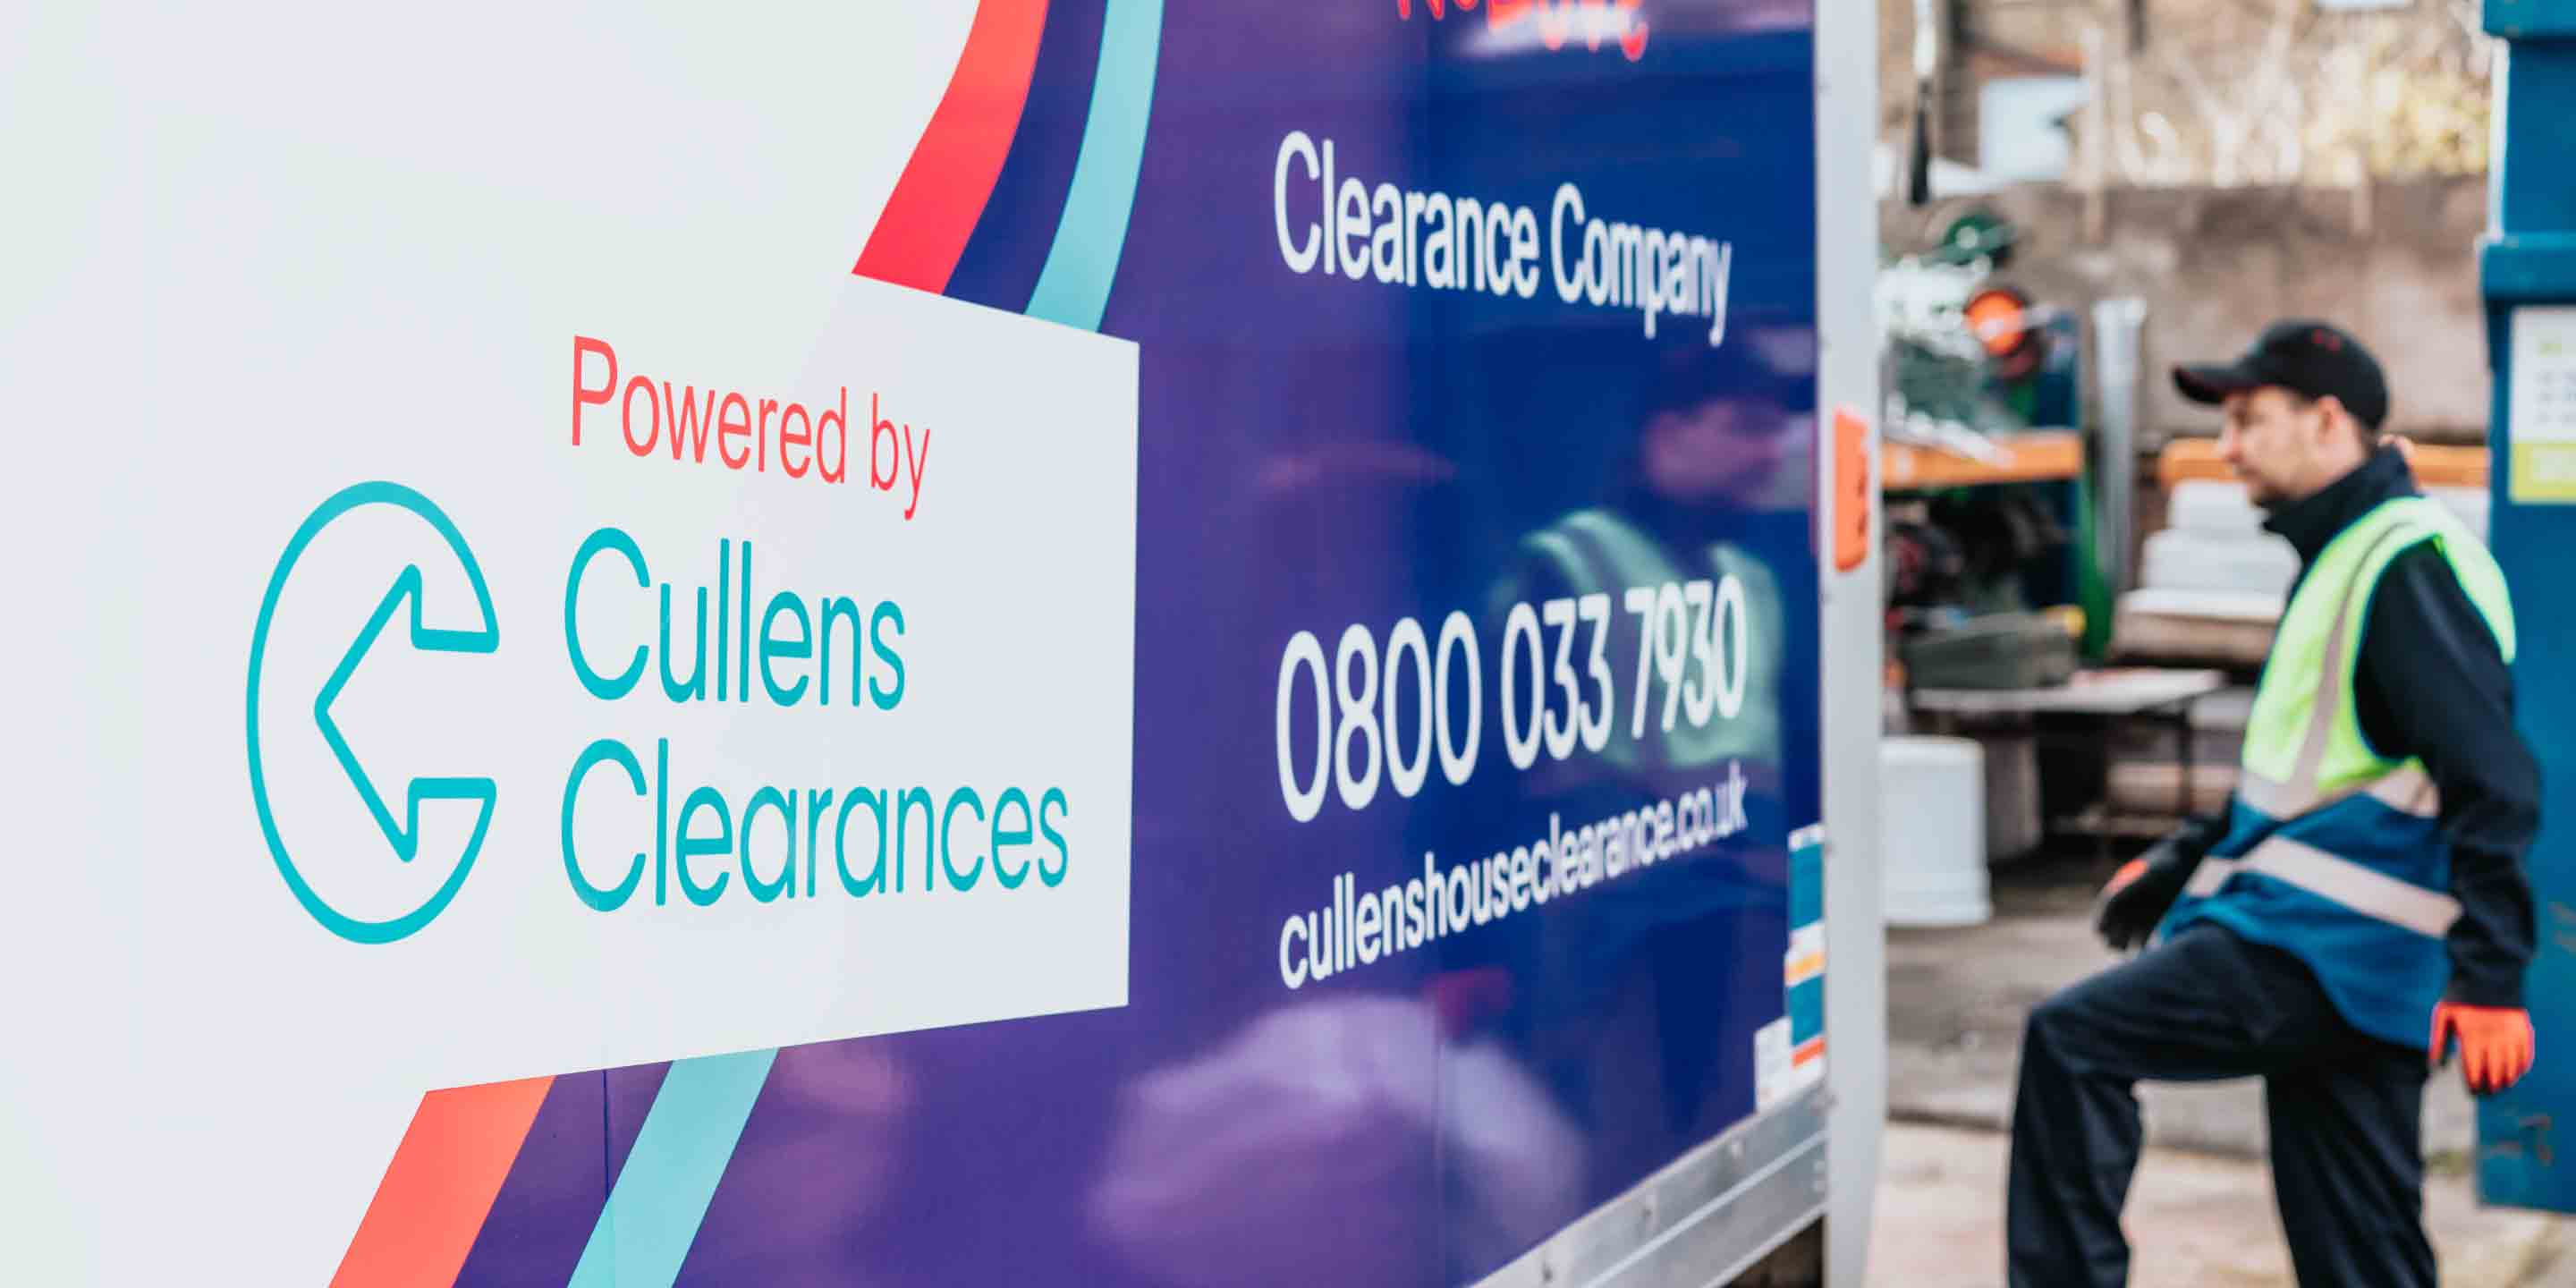 Hounslow Office Clearance Company